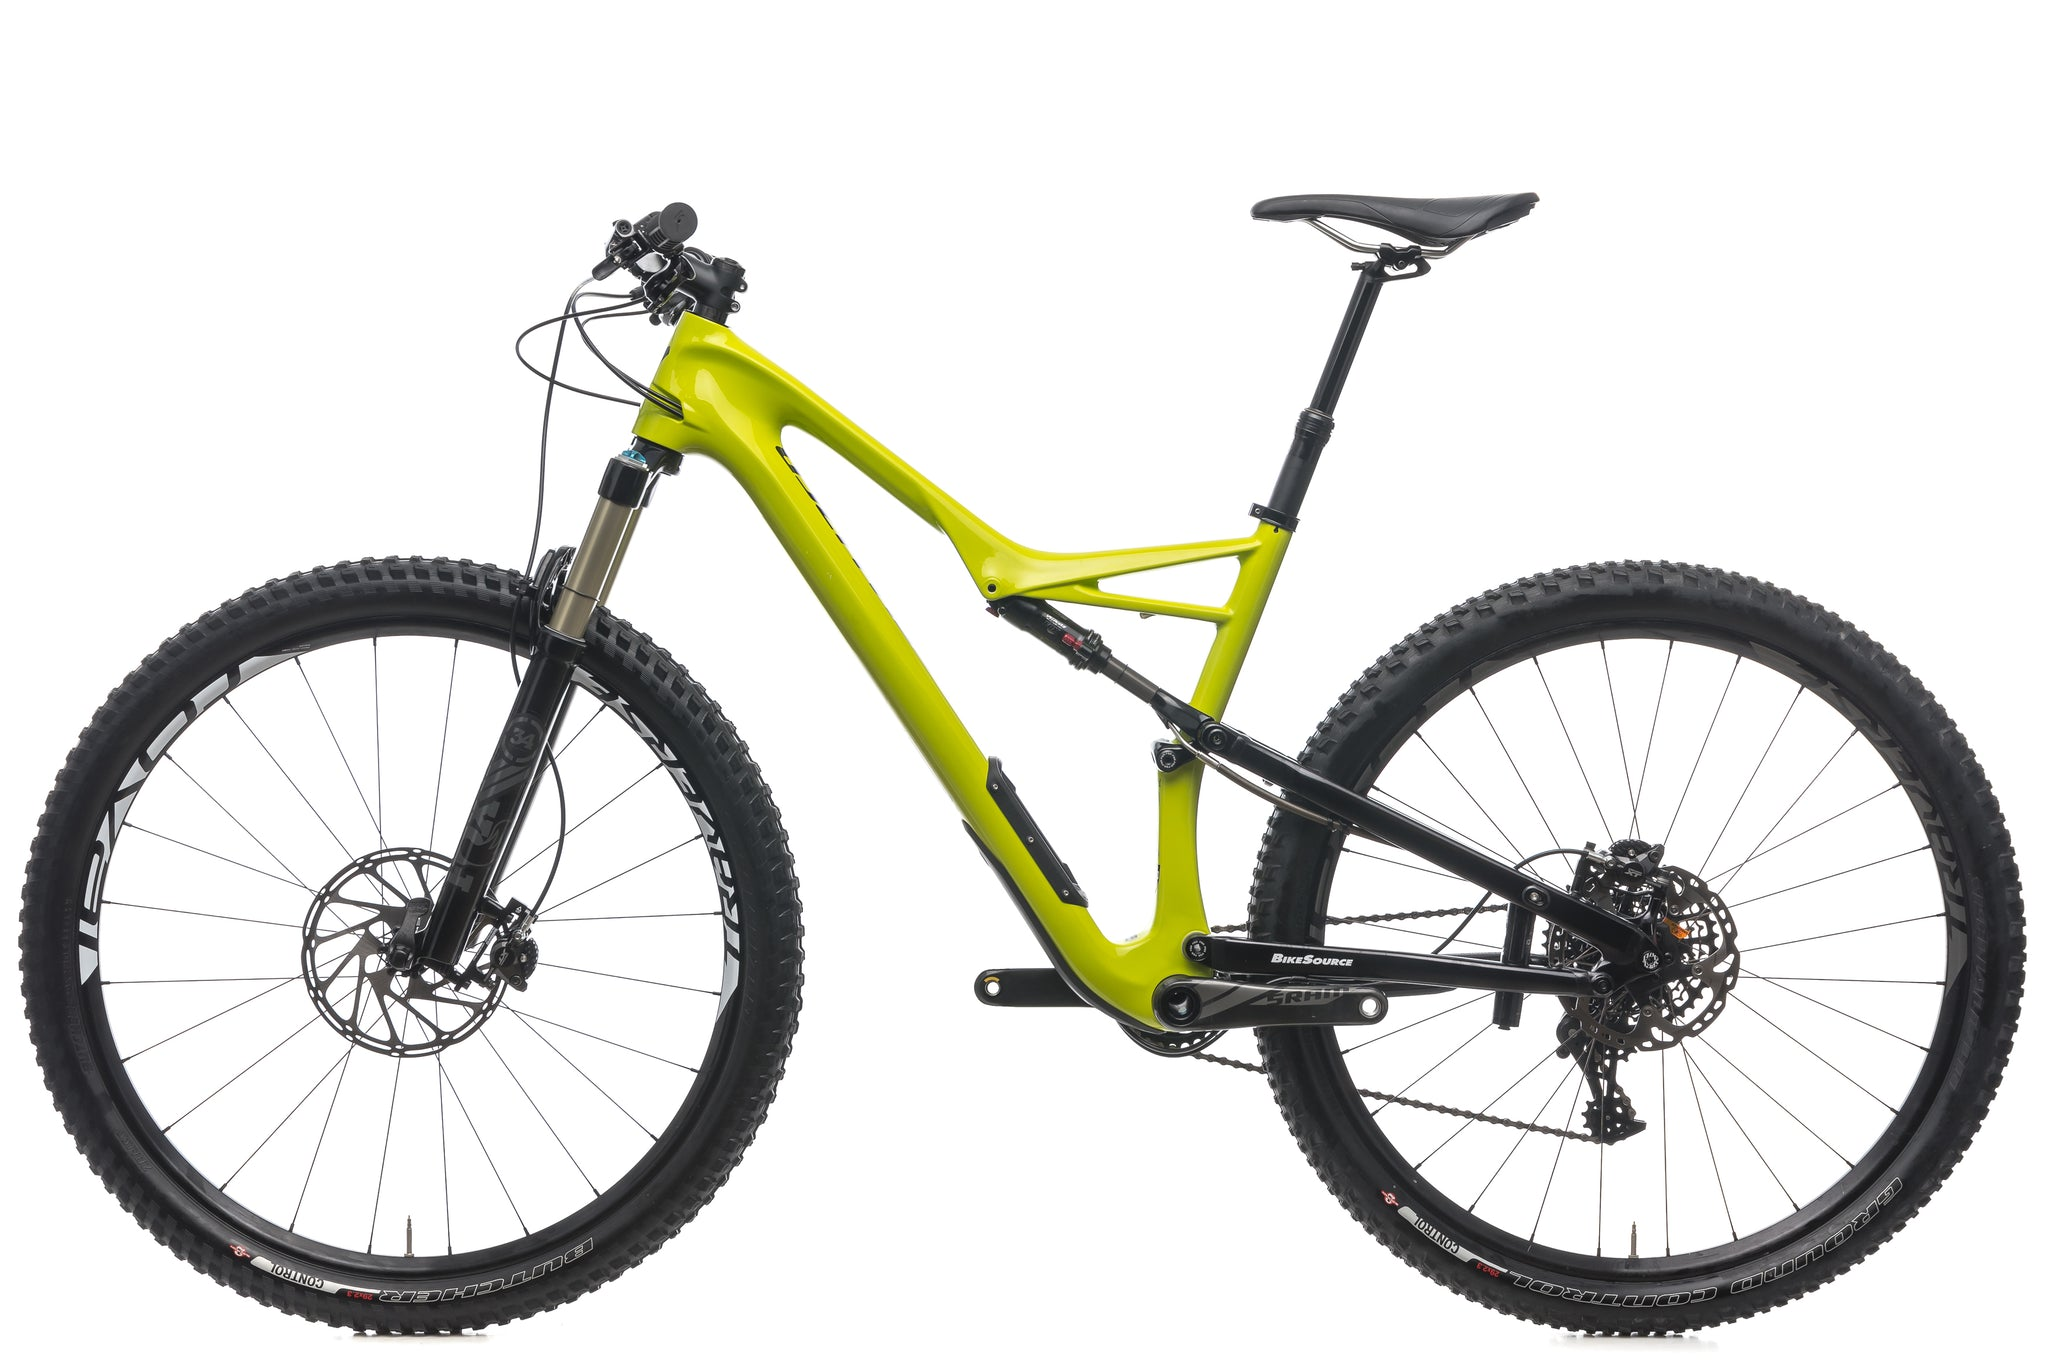 Specialized Camber Expert Carbon 29 Large Bike - 2016